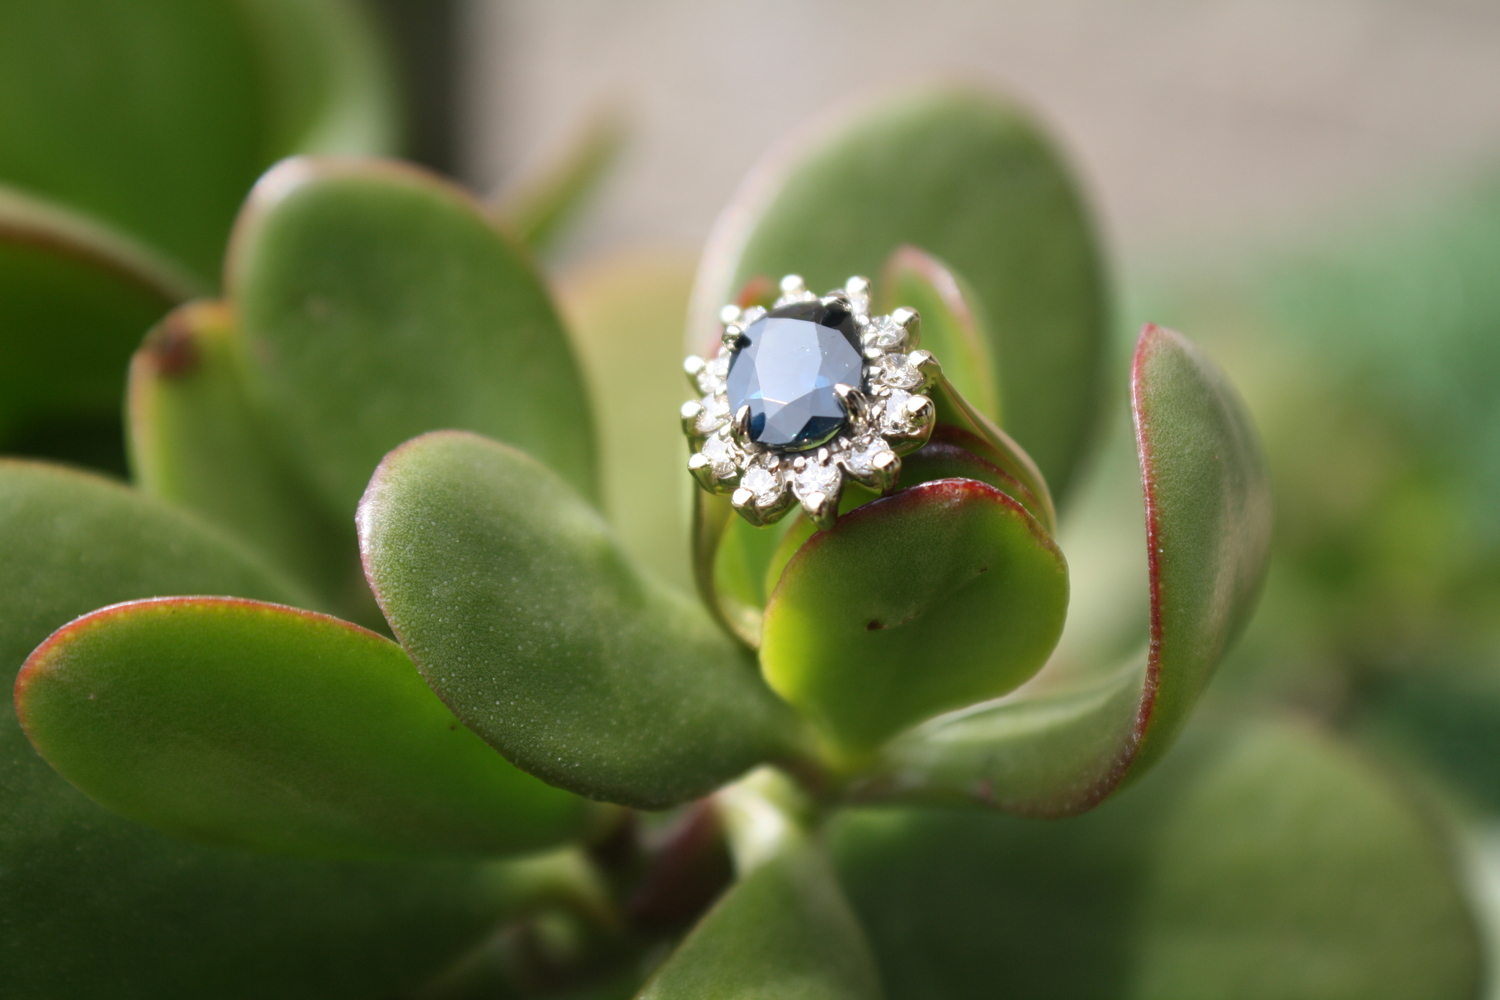 Tierra+Novy+and+Michael+Countryman+Engagement+Ring+Diamond+and+Sapphire+'Flower'+Ring_08.jpg